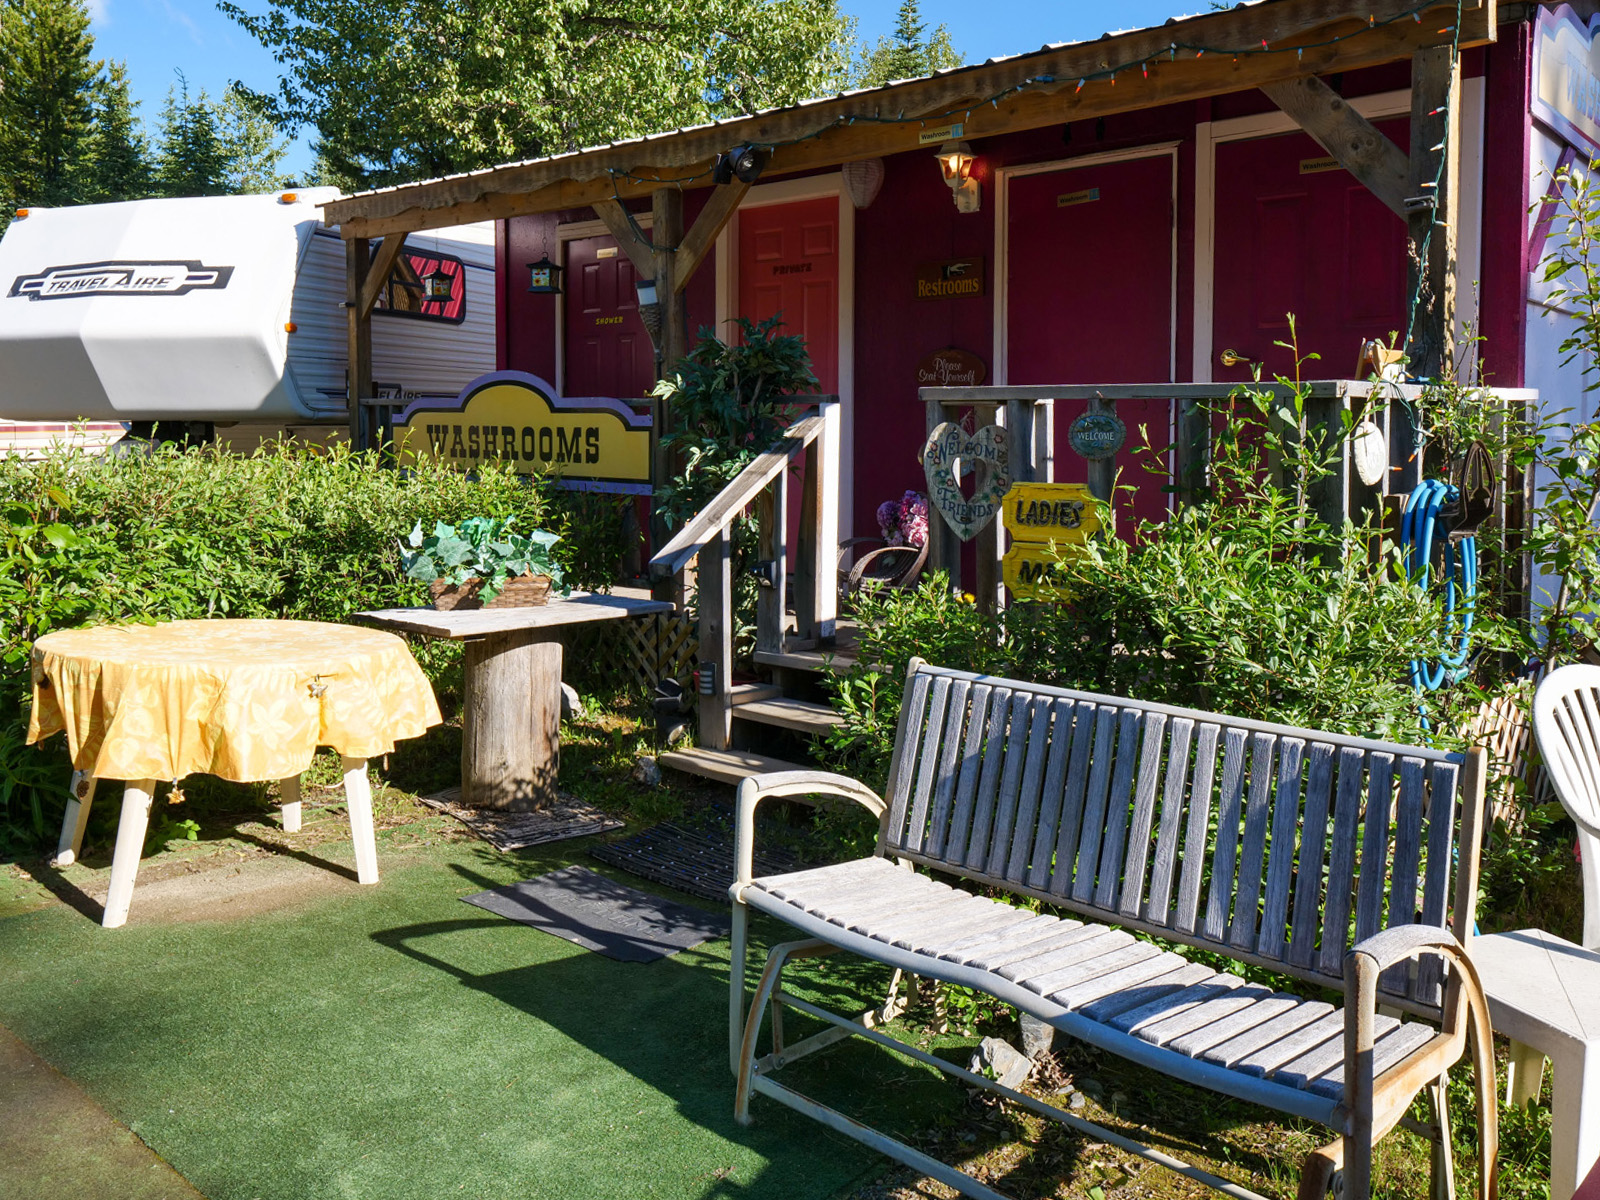 Cariboo joy rv park 18